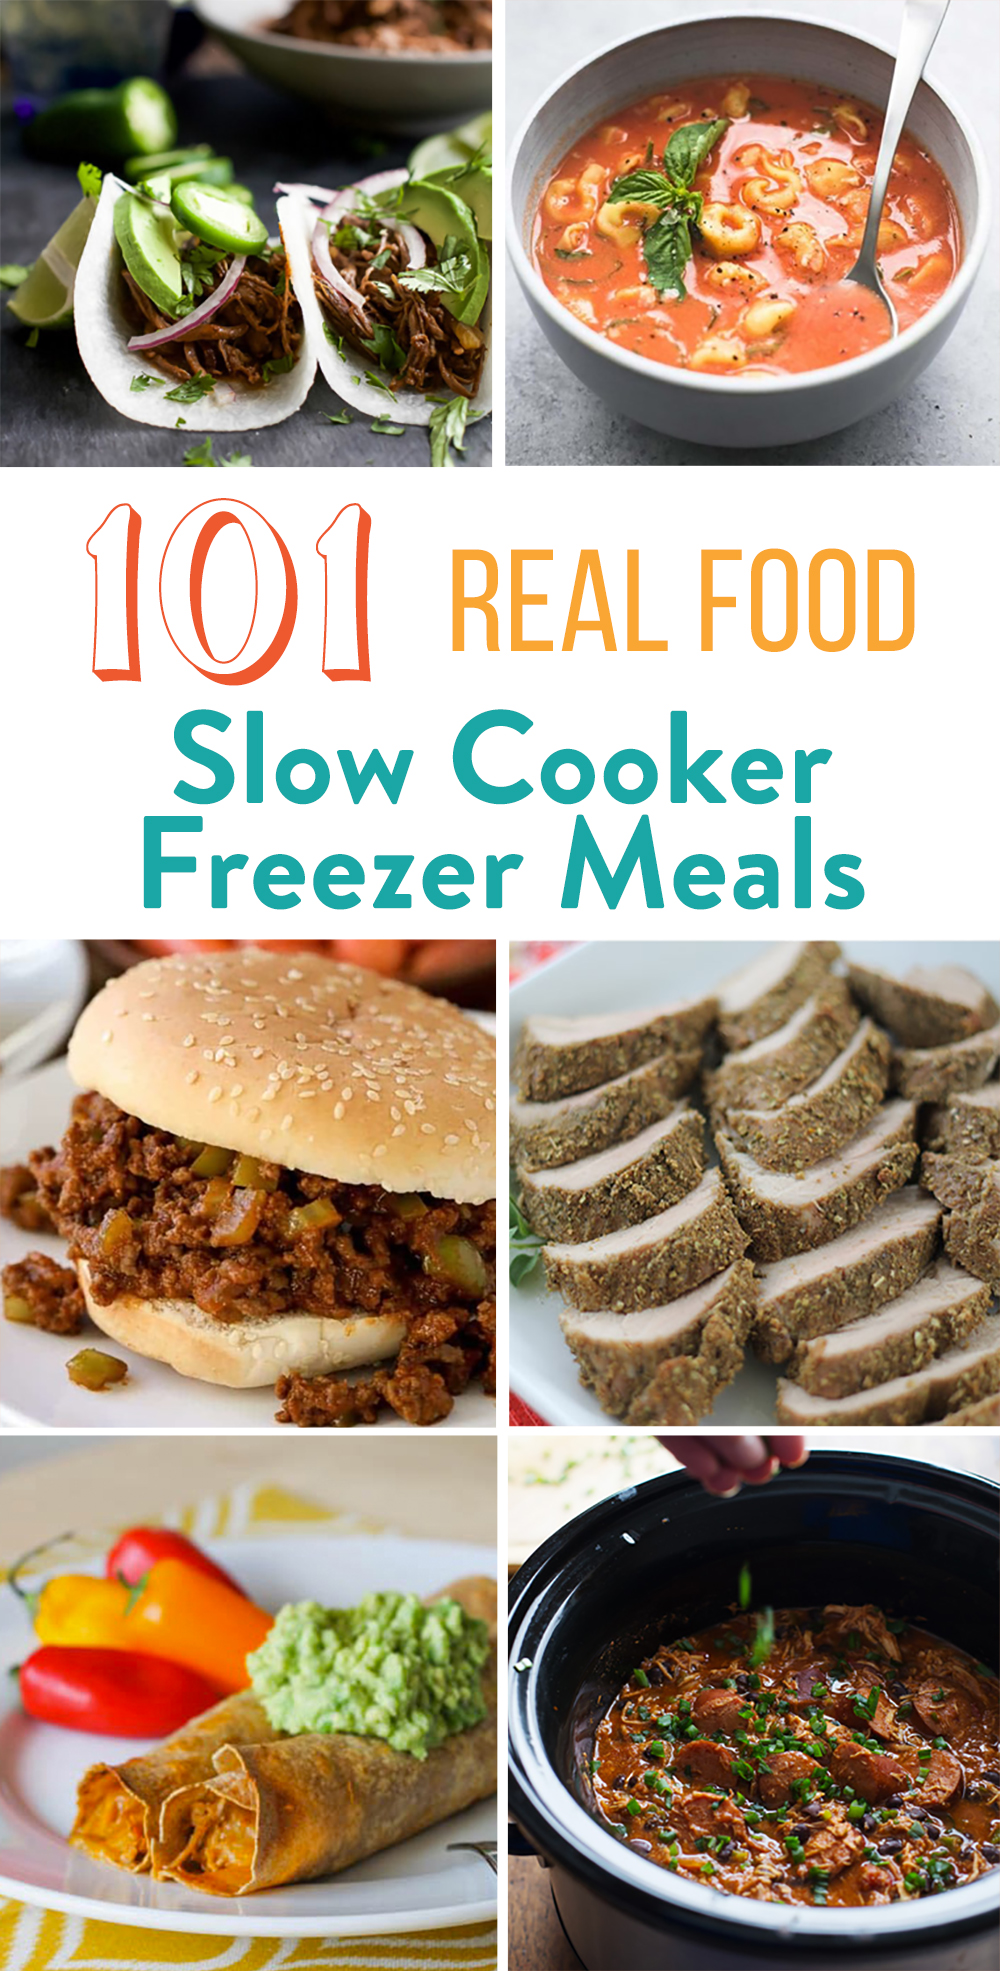 101 real food slow cooker freezer meals thriving home 101 real food slow cooker freezer meals your life just got easier and healthier with forumfinder Images